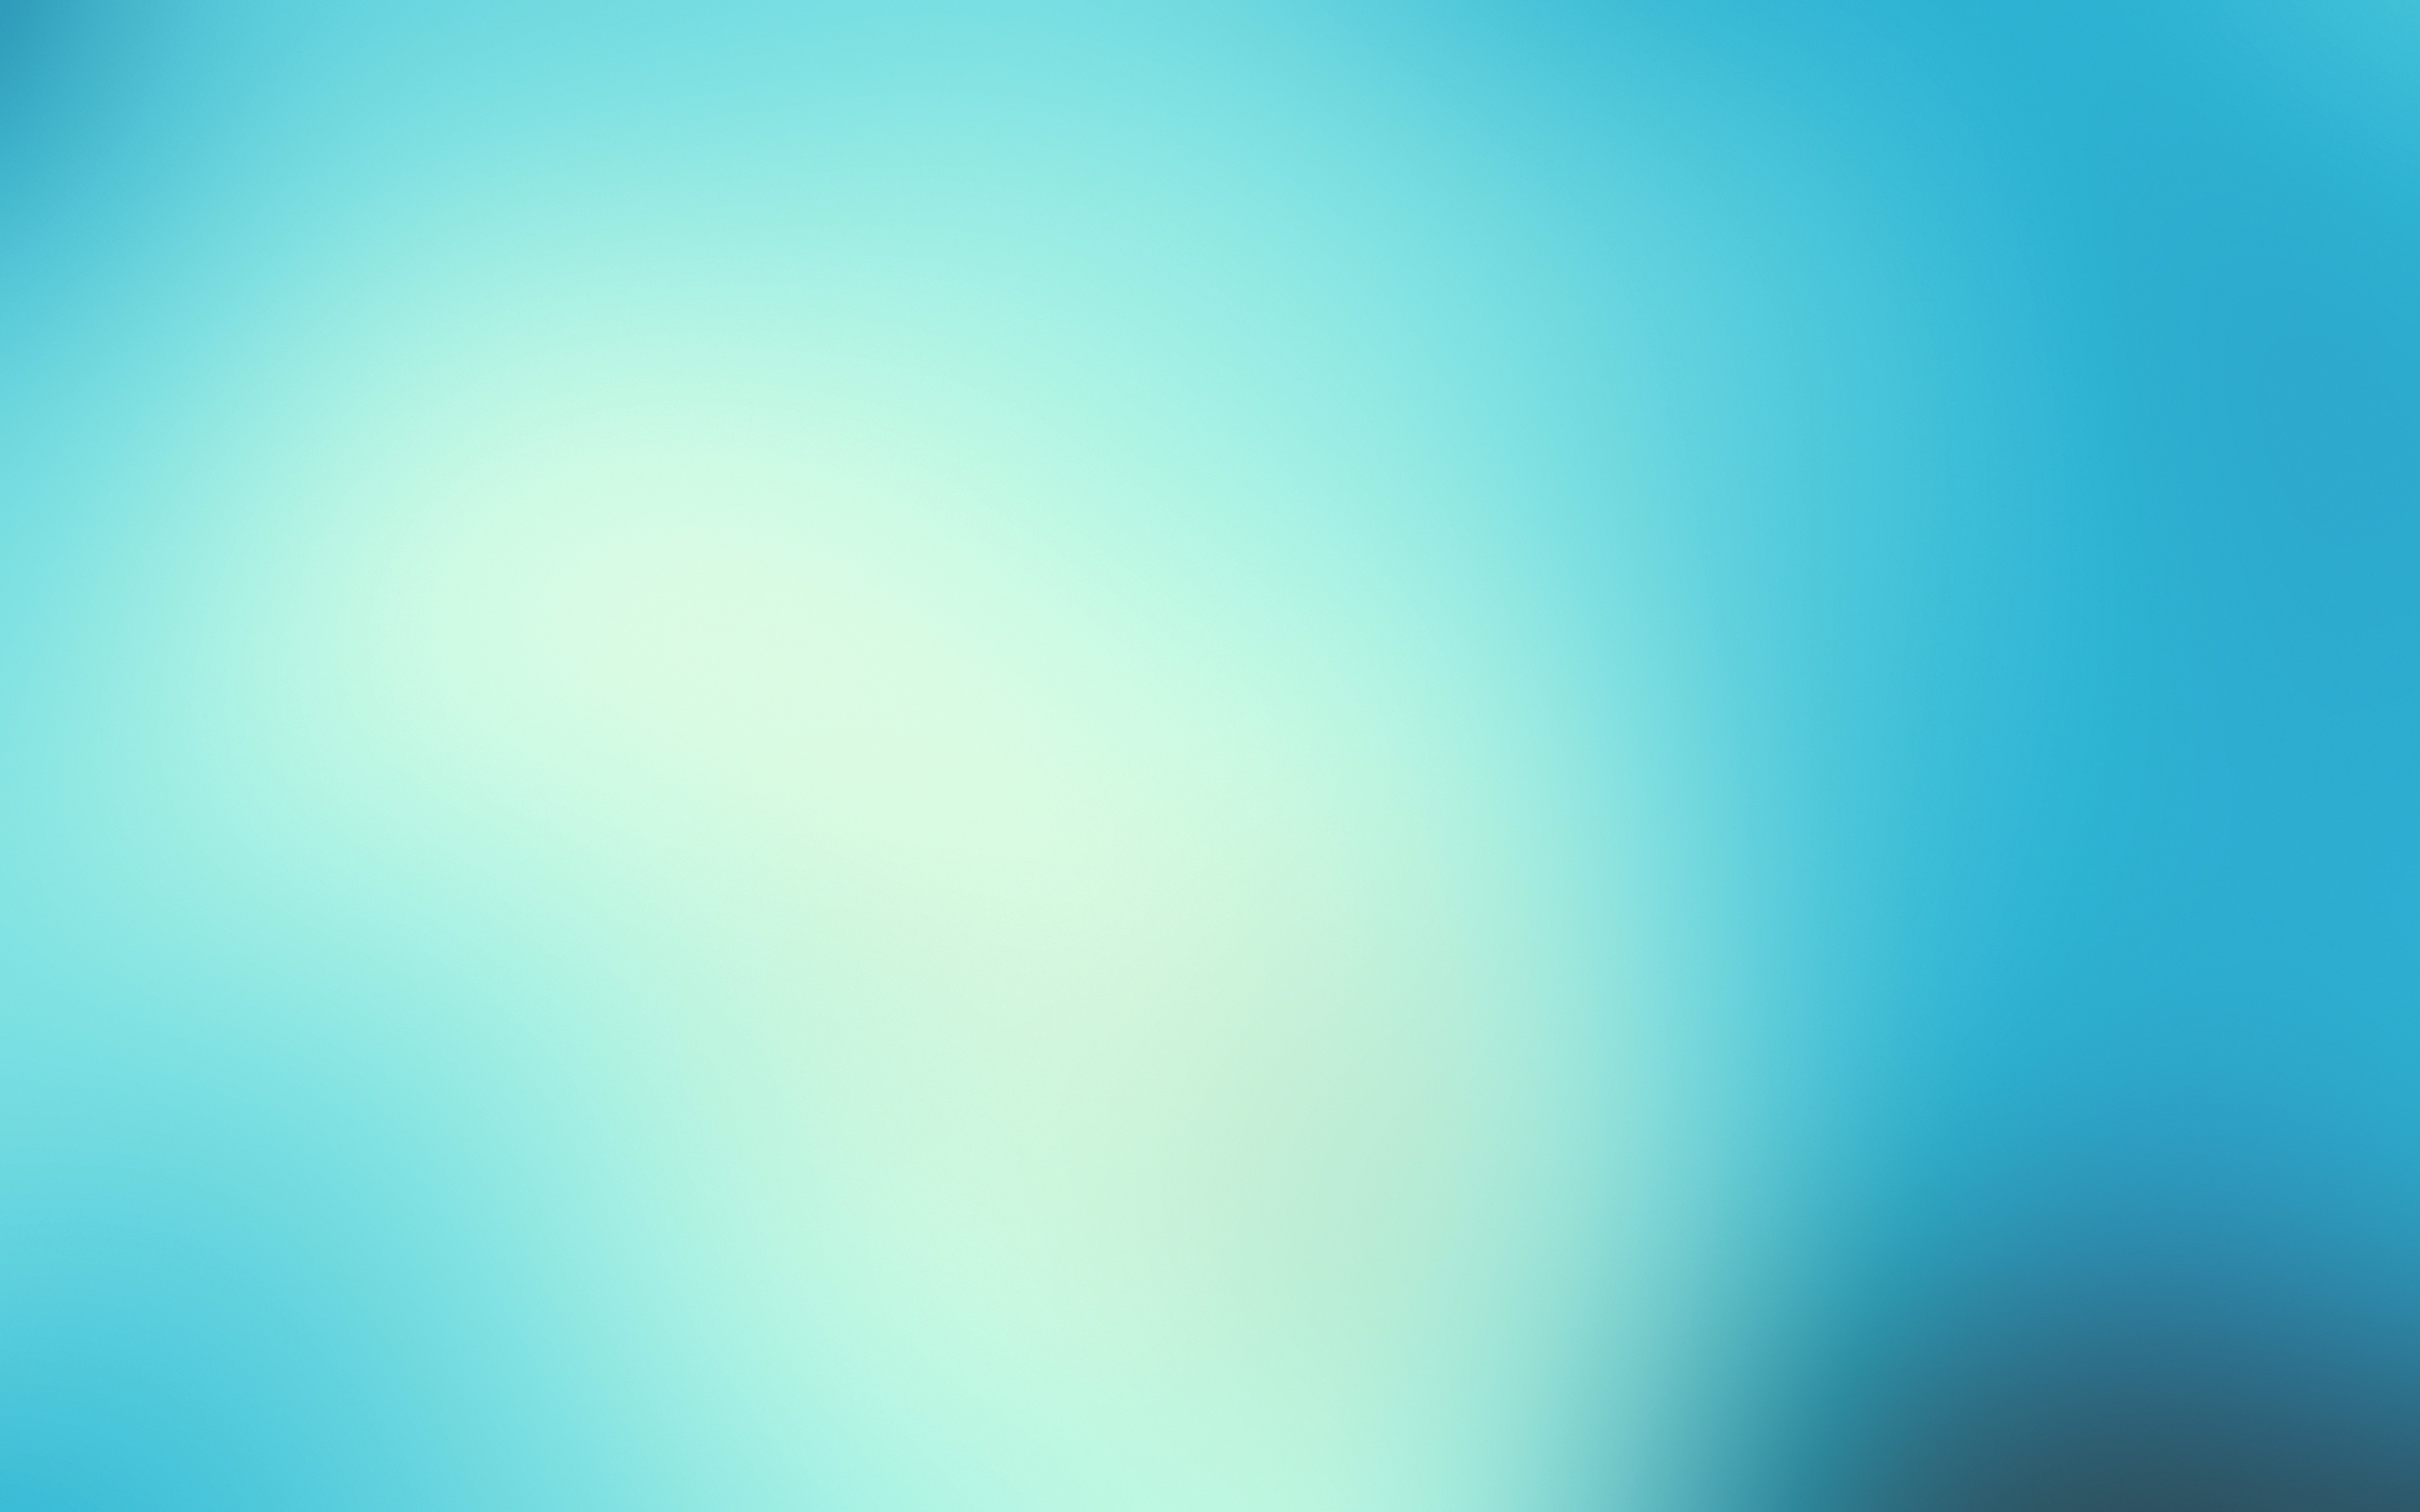 solid light blue wallpaper hd - photo #46